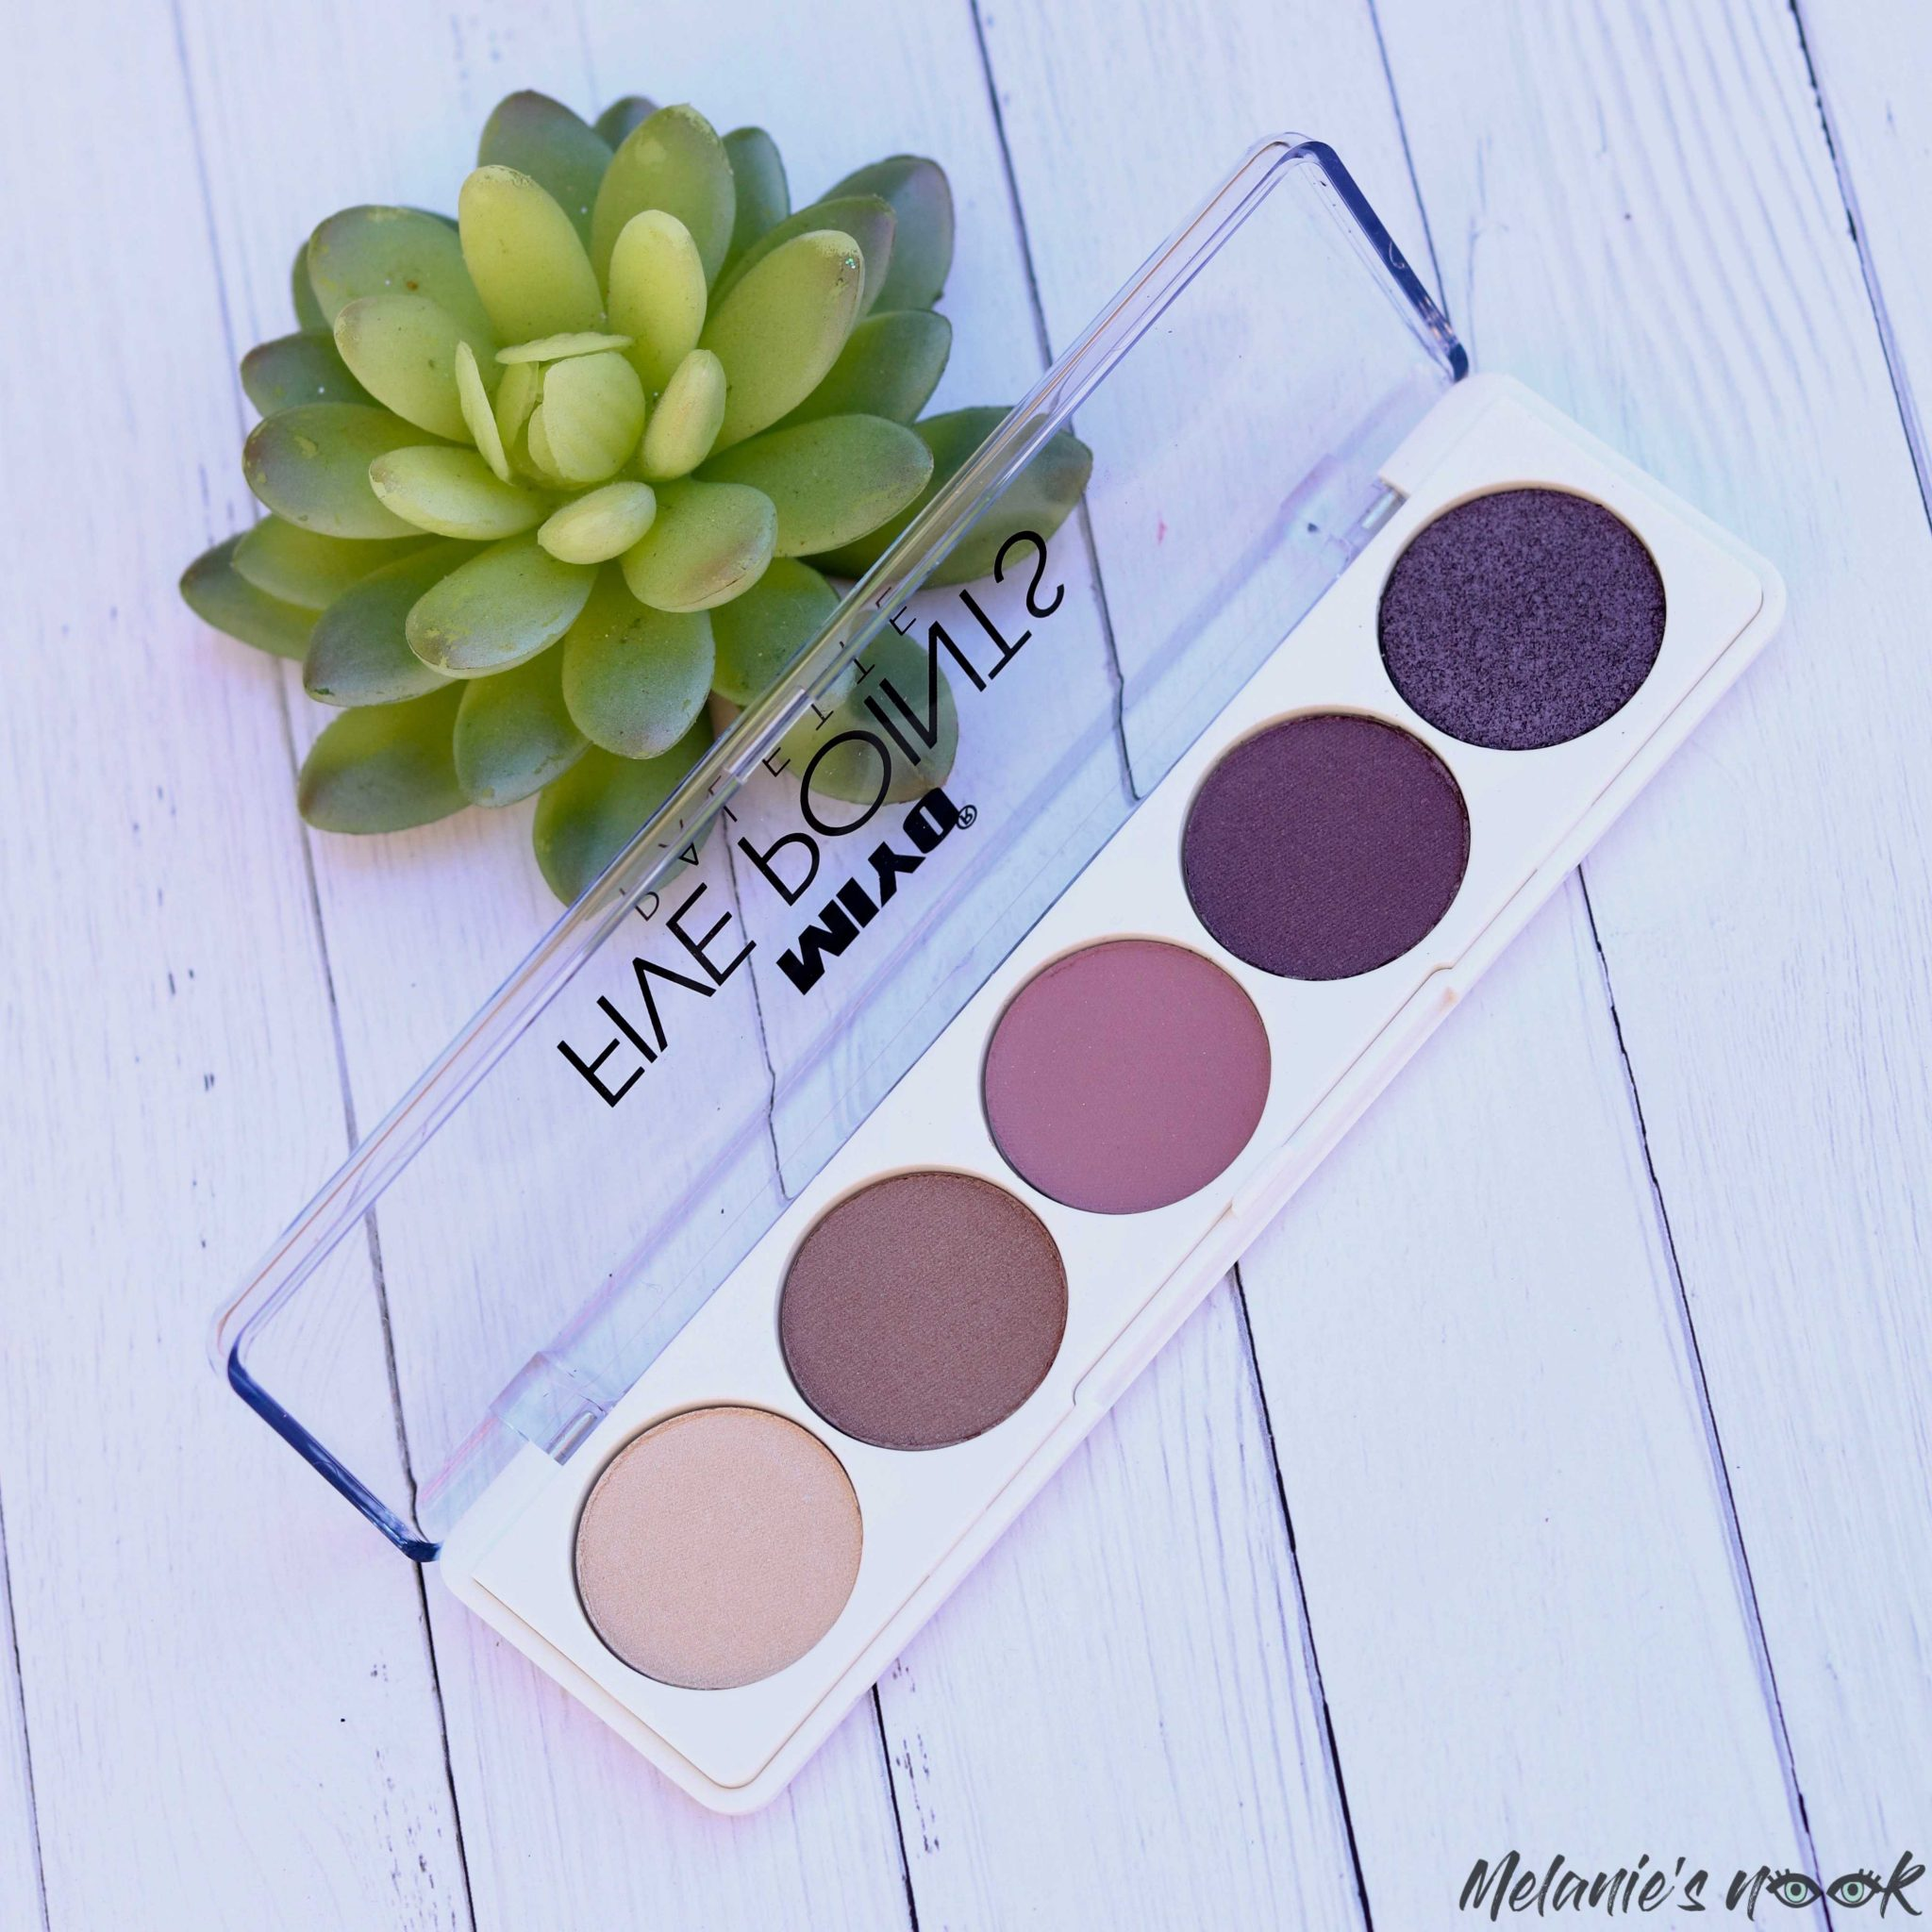 New in Beauty - February 2020 Miyo 5 Points Palette